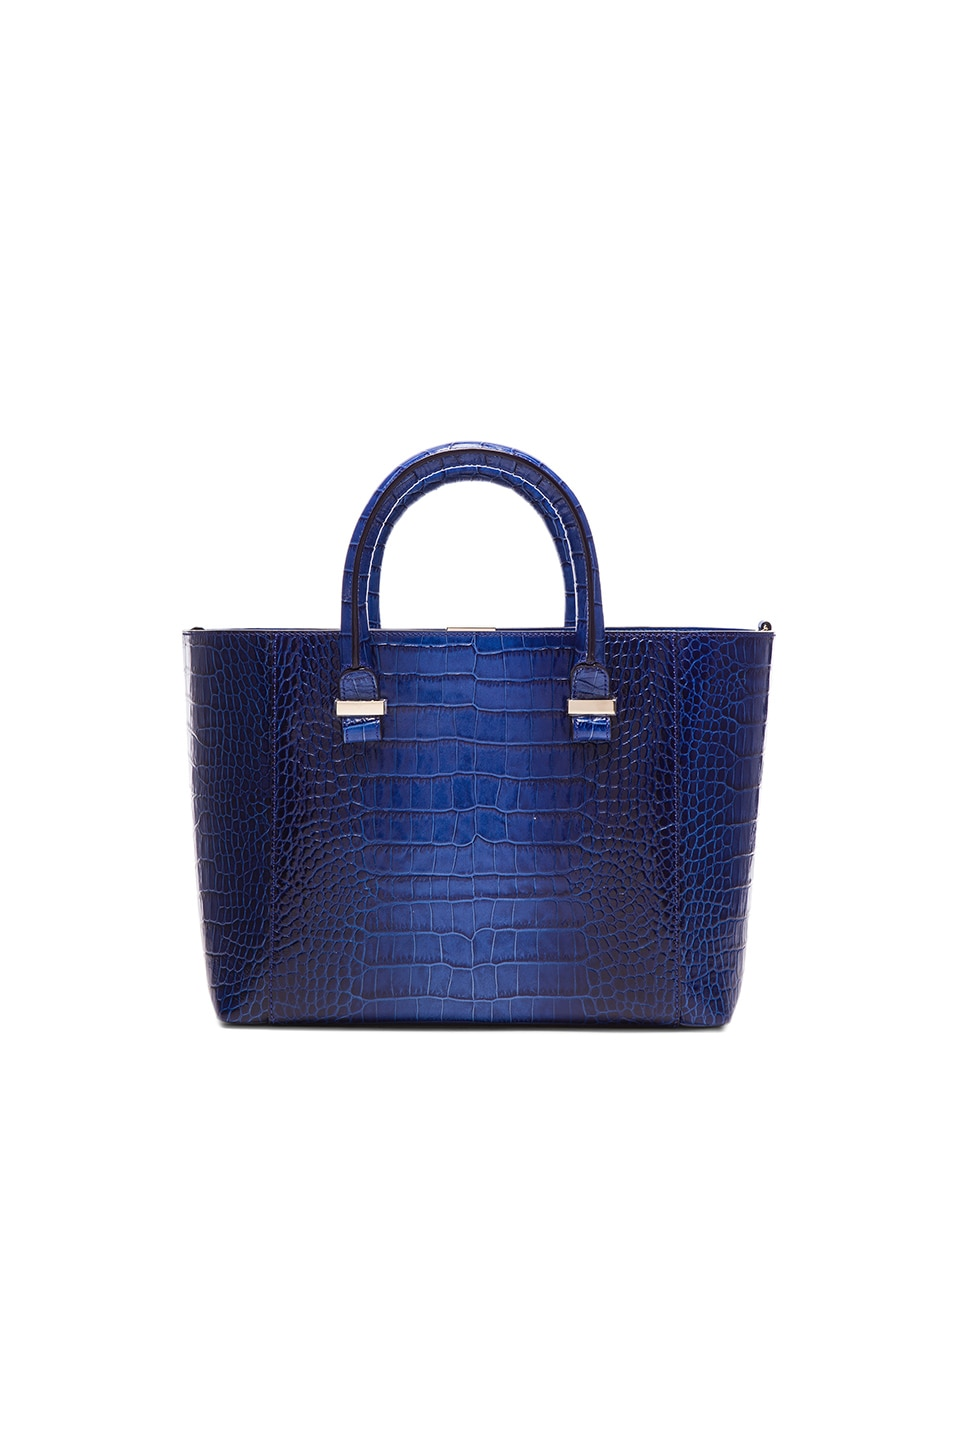 Image 1 of Victoria Beckham Quincy Printed Crocodile Tote in Electric Blue